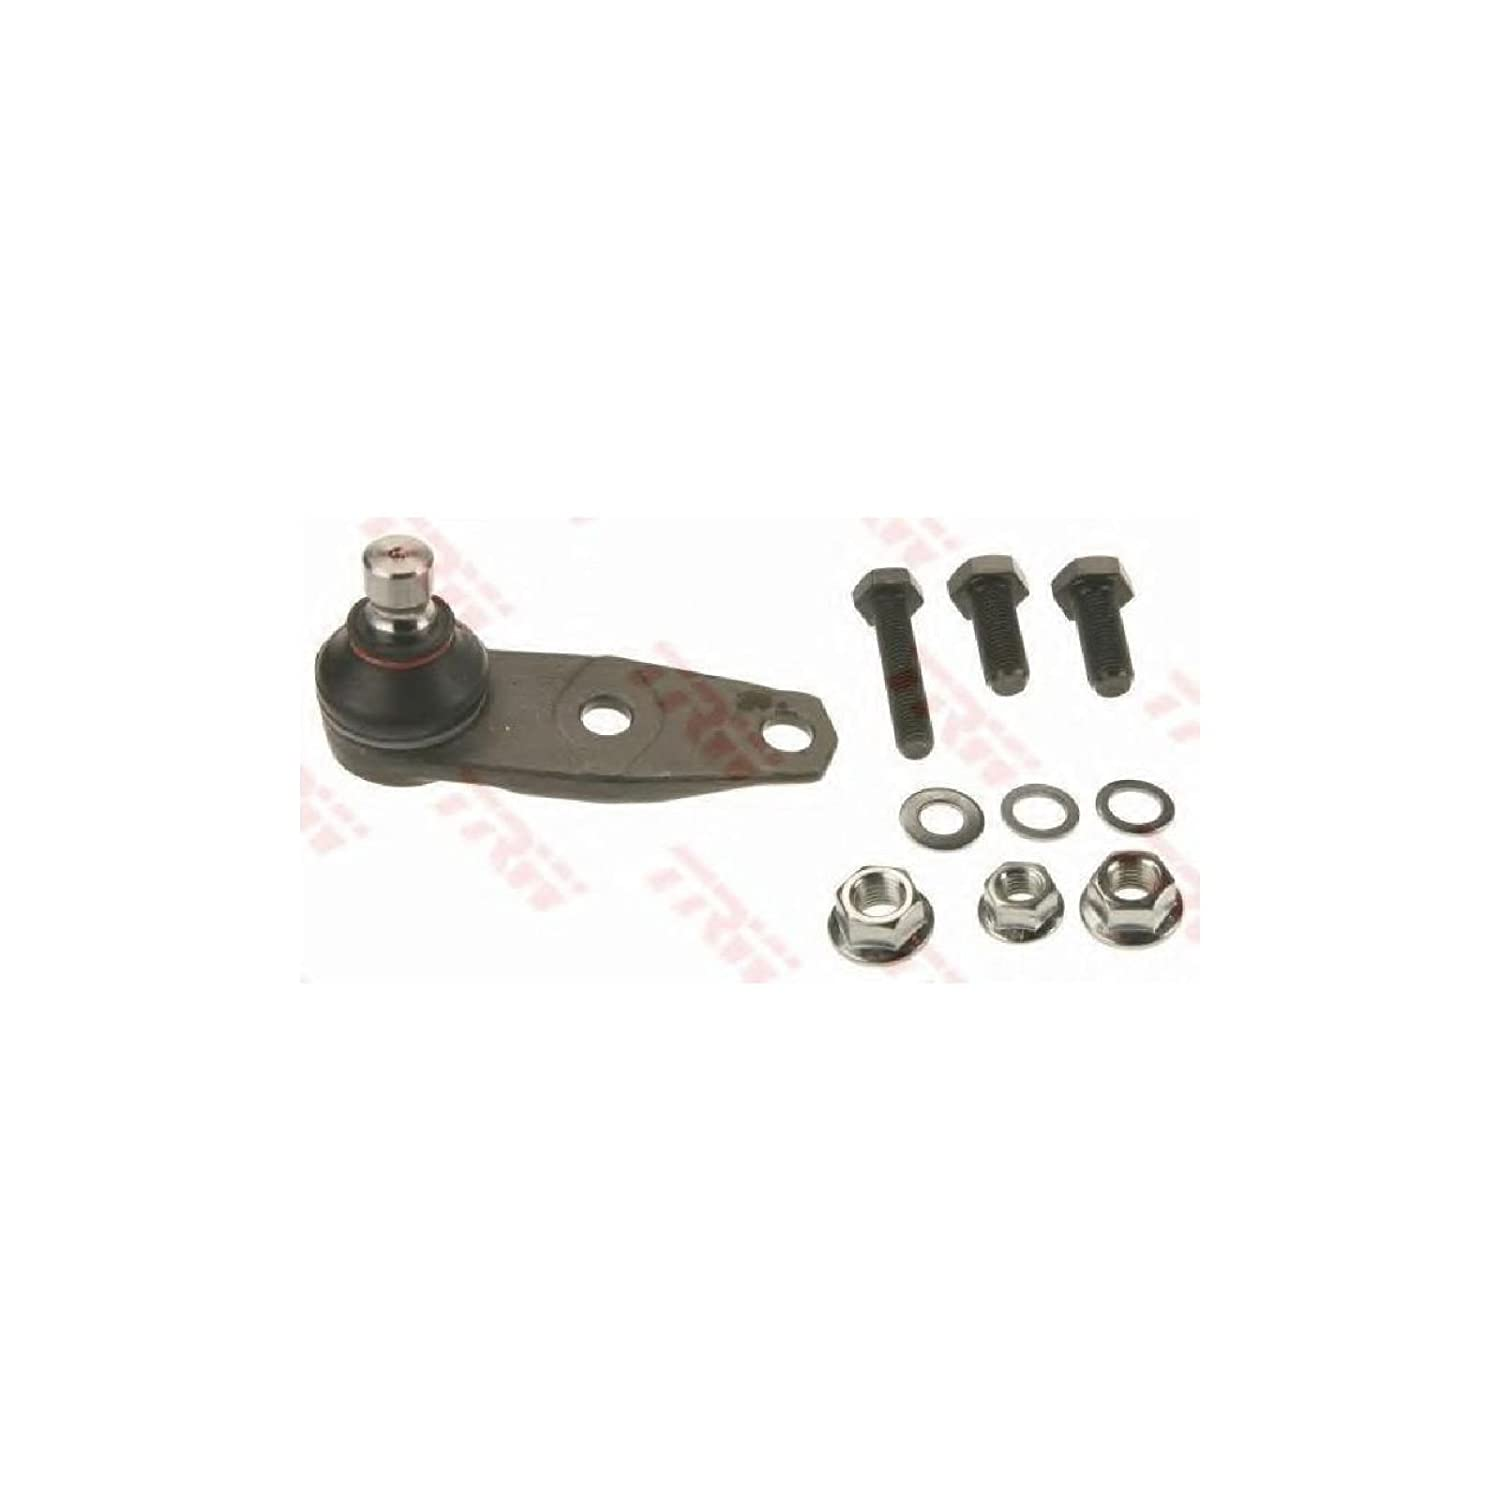 TRW Automotive AfterMarket JBJ761 rtula